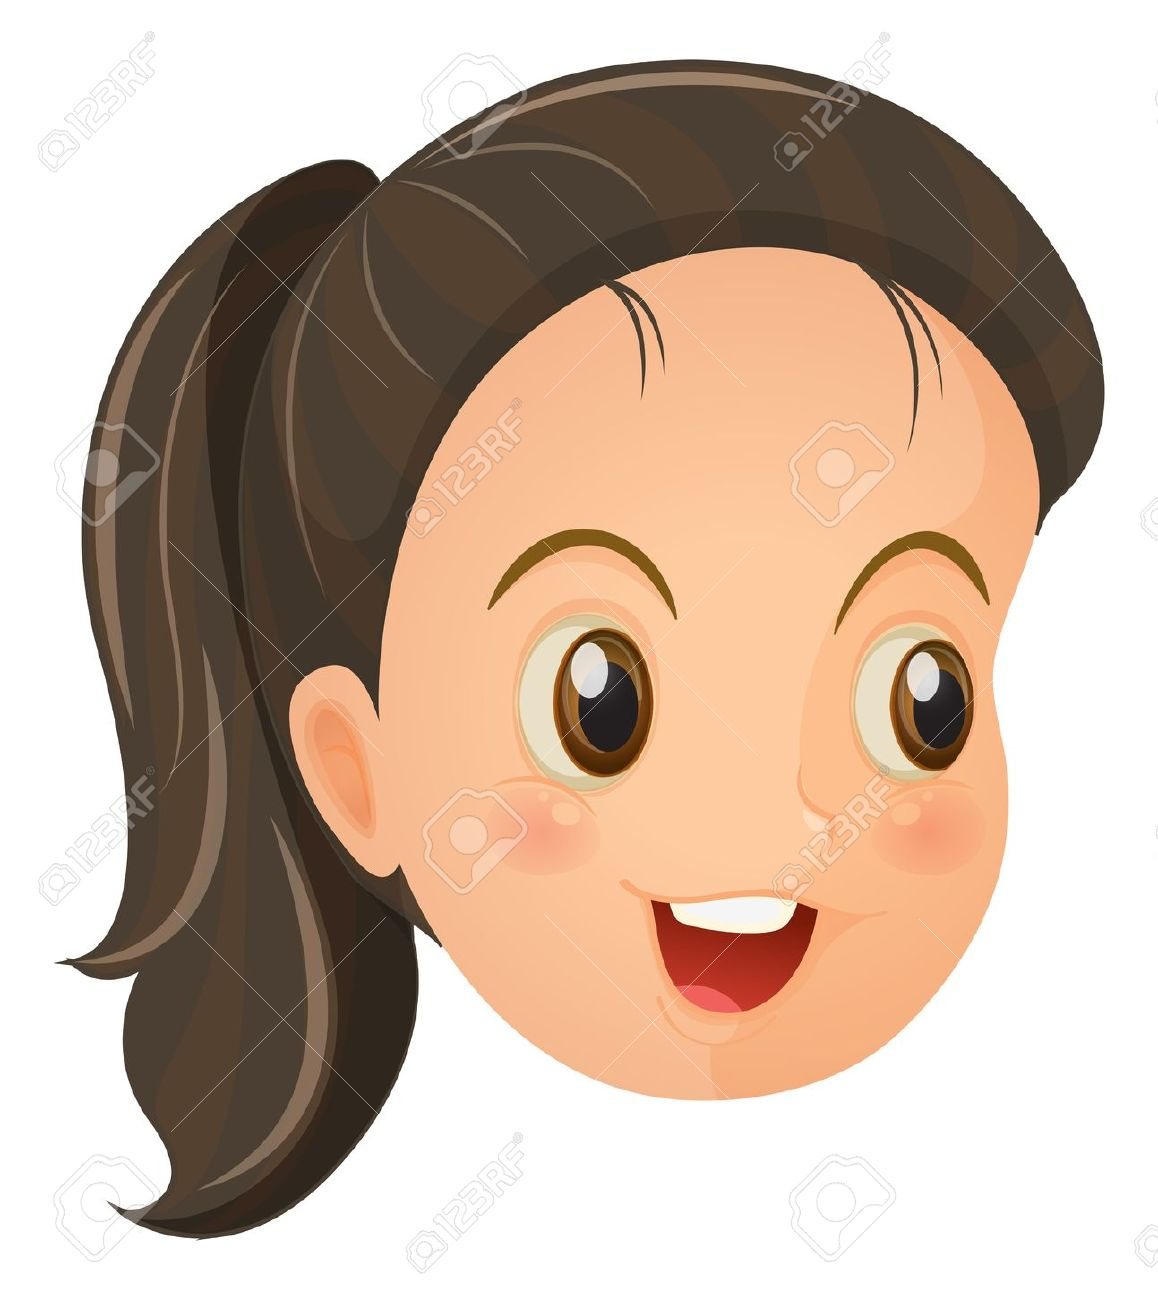 Illustration Of A Face Of A Cute Little Girl On A White Backround.